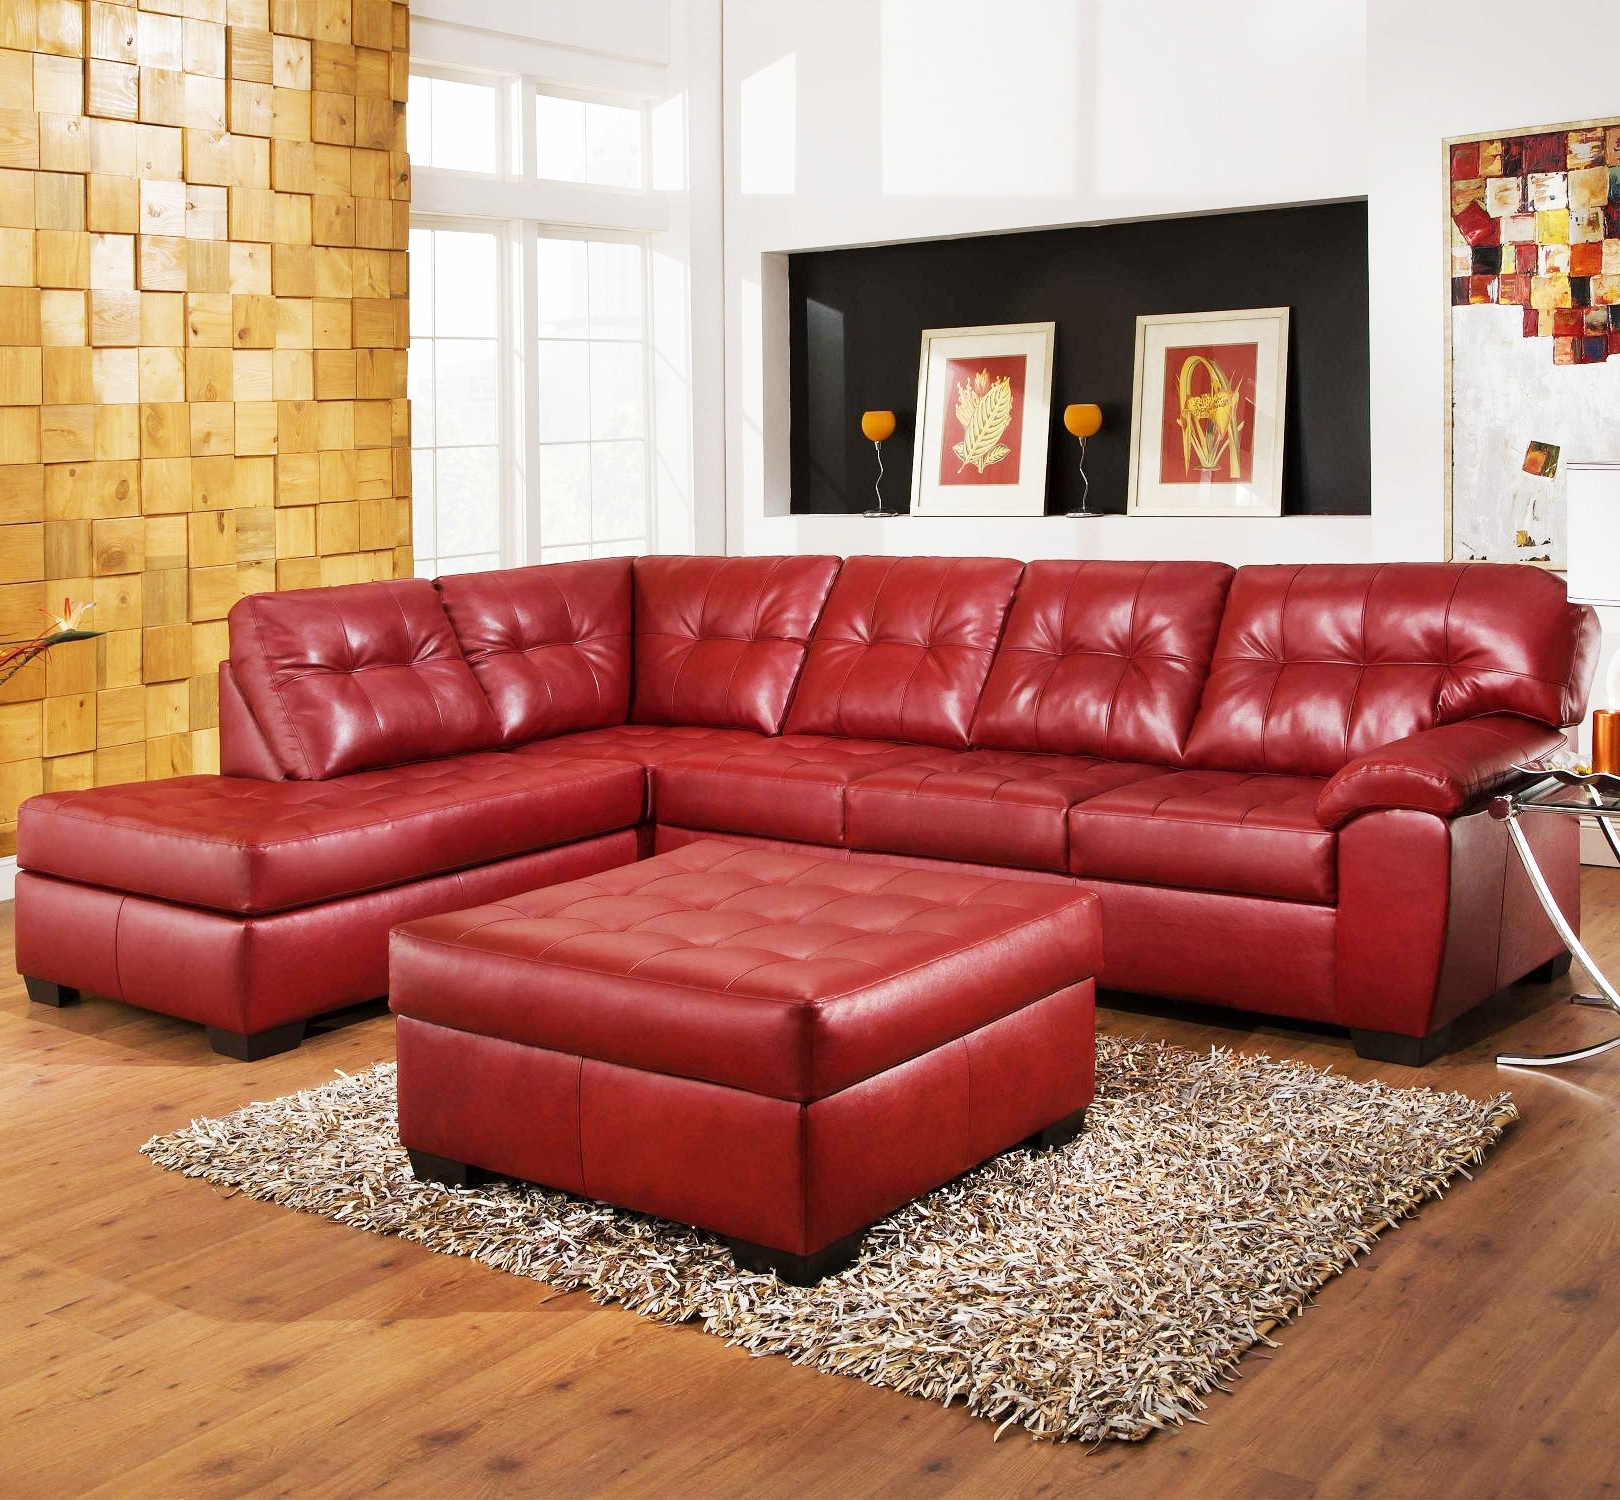 Small Red Leather Sectional Sofas With Best And Newest Sofas : Sectional Couch Small Sectional Couch Red Sectional Couch (View 12 of 15)